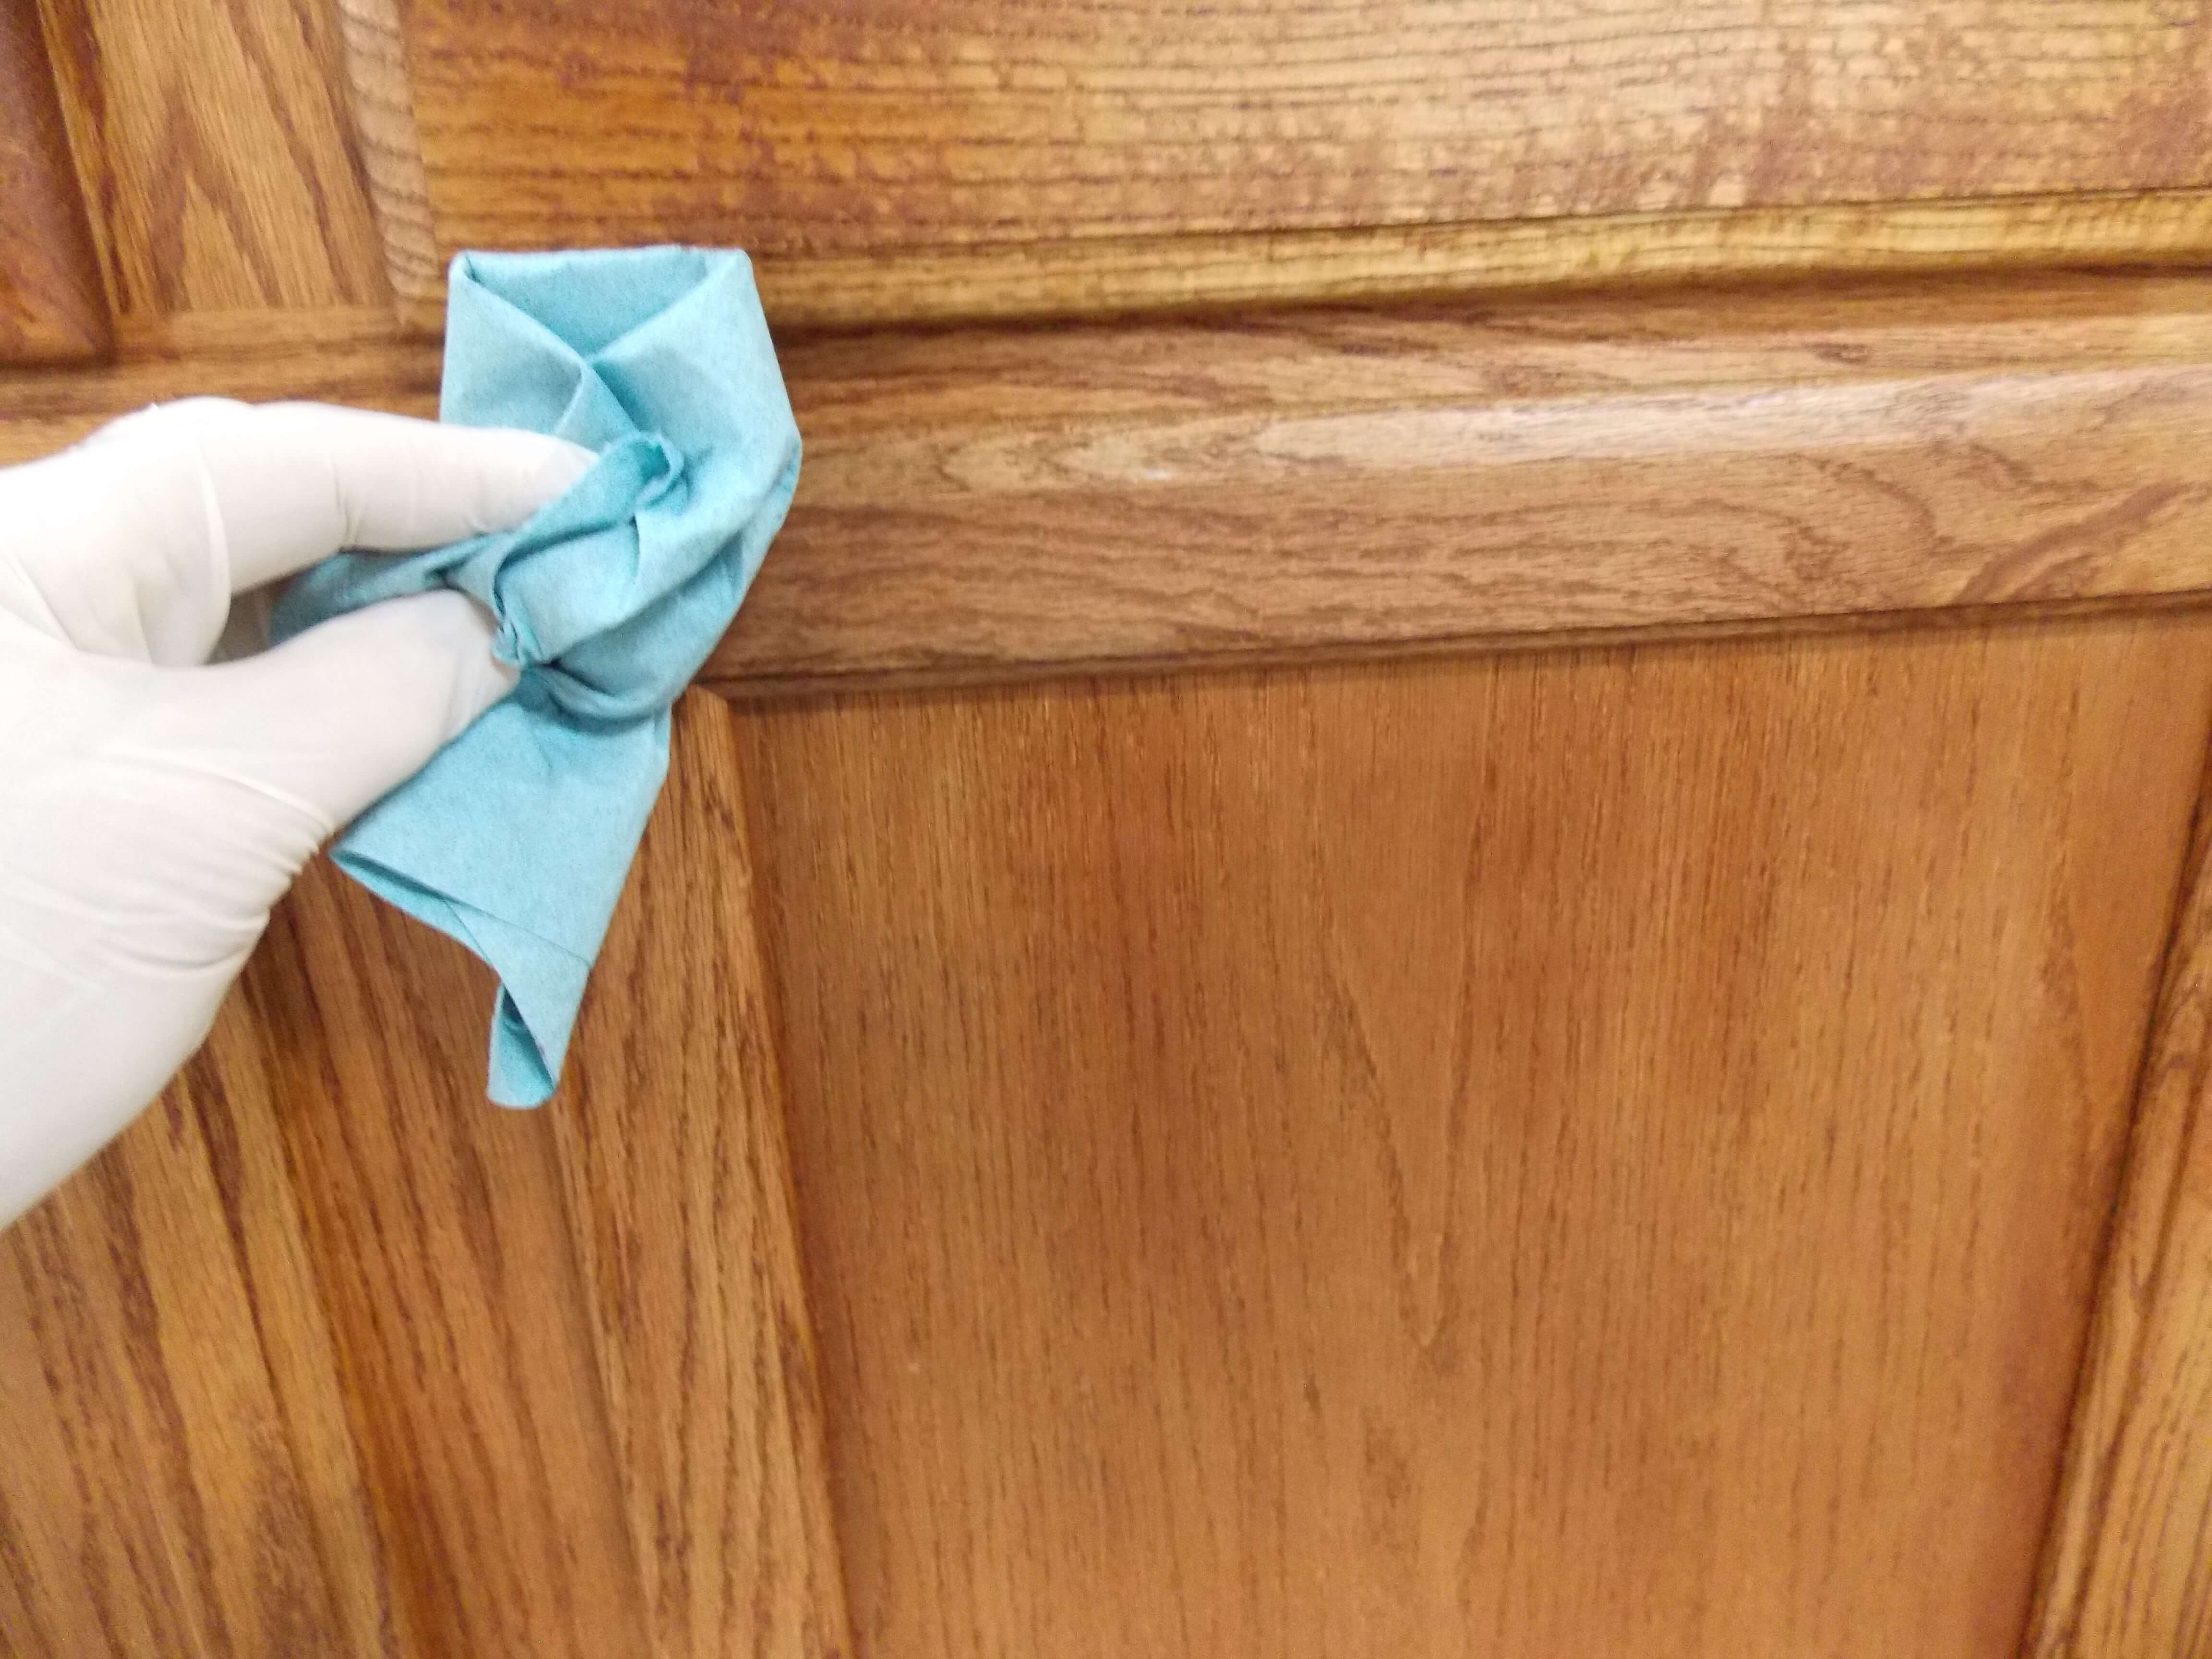 Removing excess stain will reveal the finished look of the cabinets